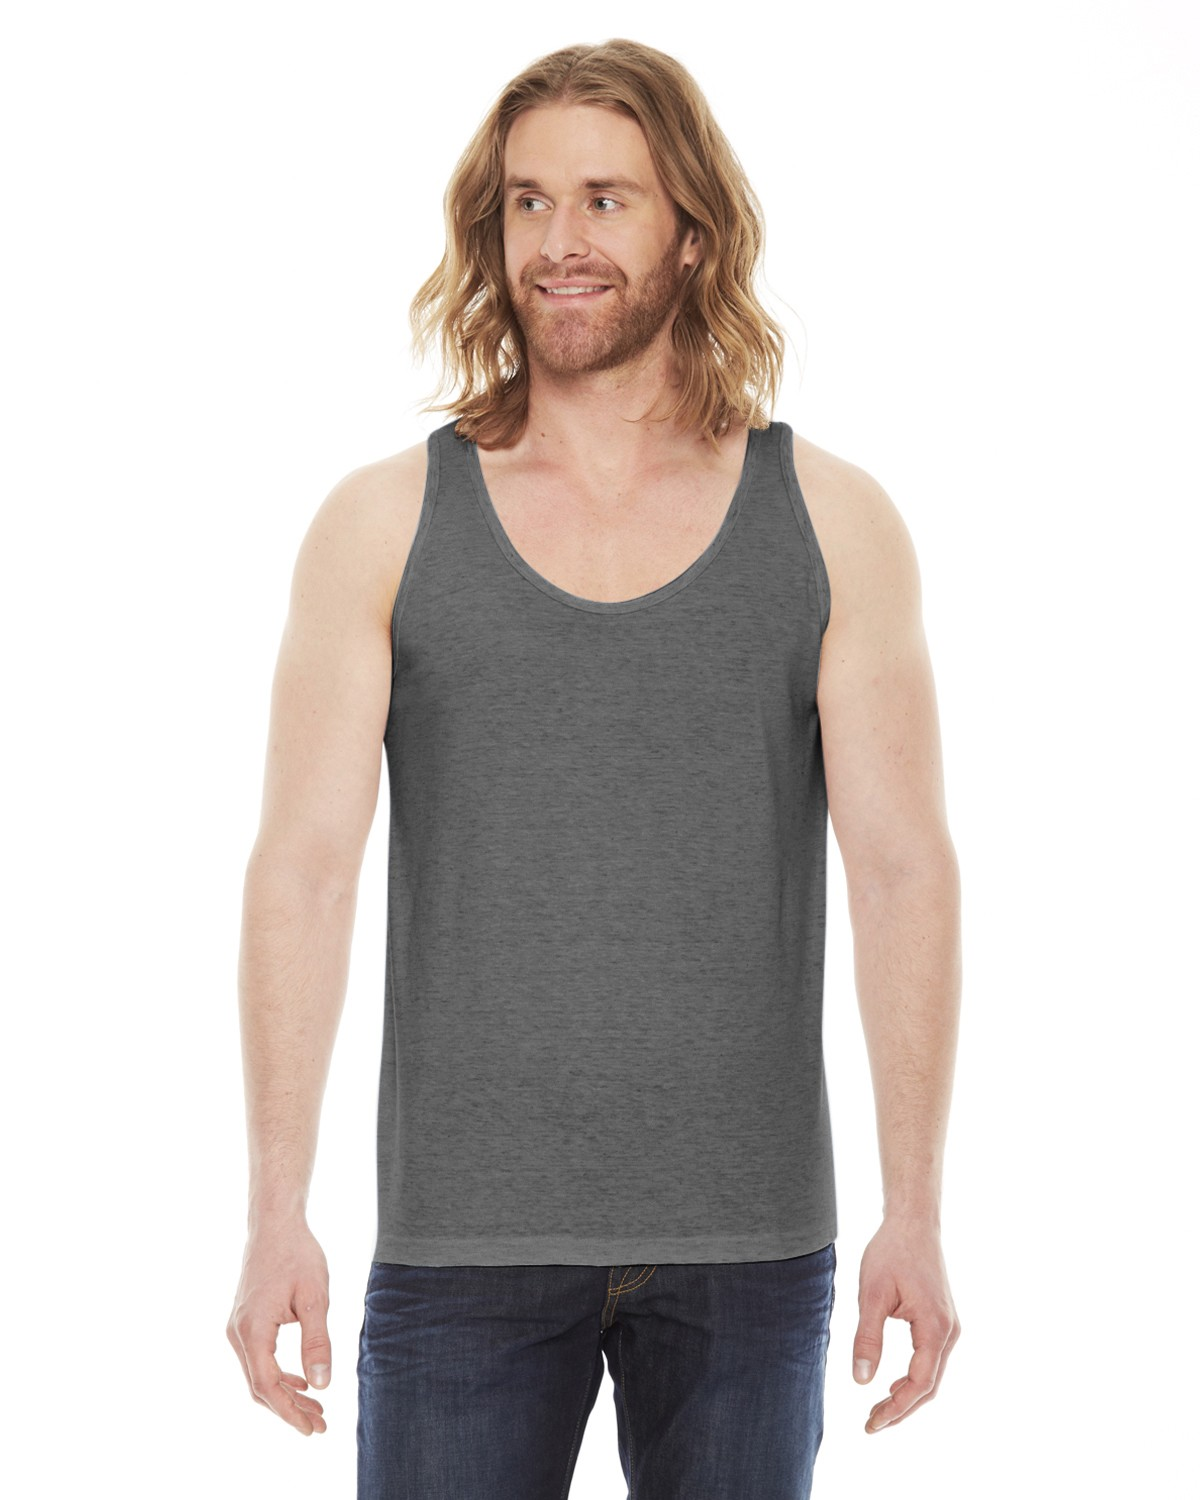 TR408W American Apparel ATHLETIC GREY